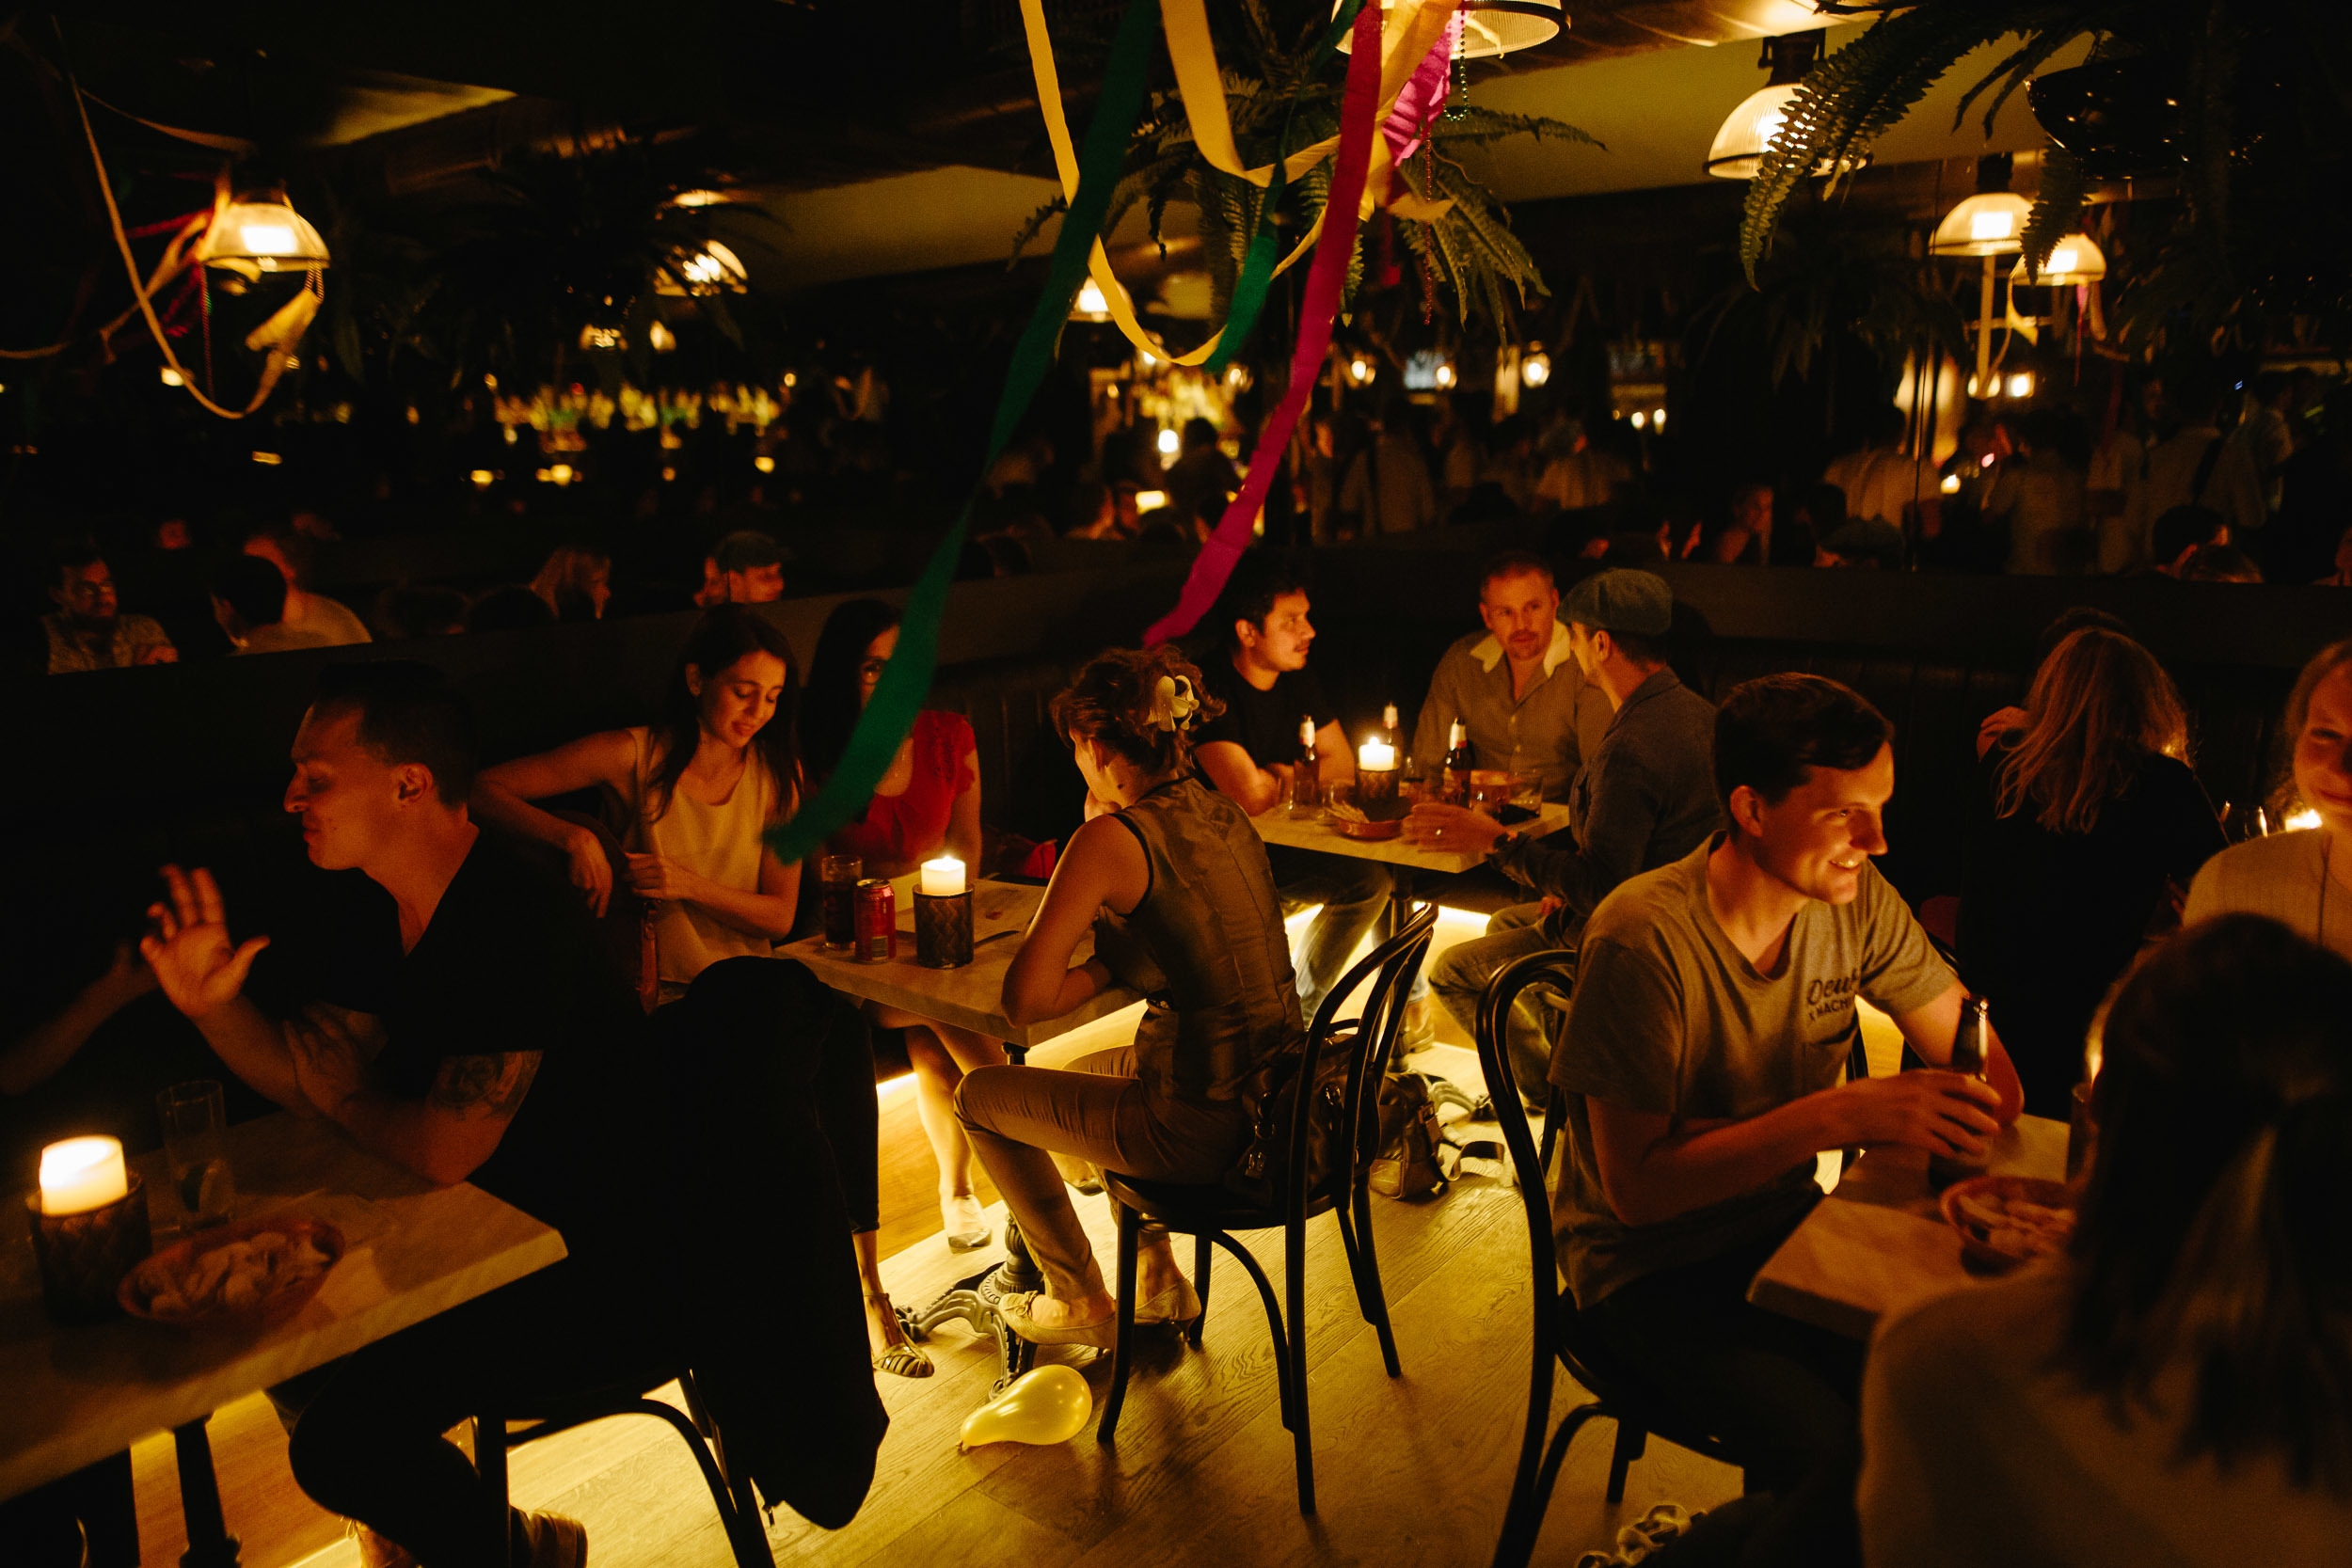 People sitting at tables inside the dimly lit Swinging Cat